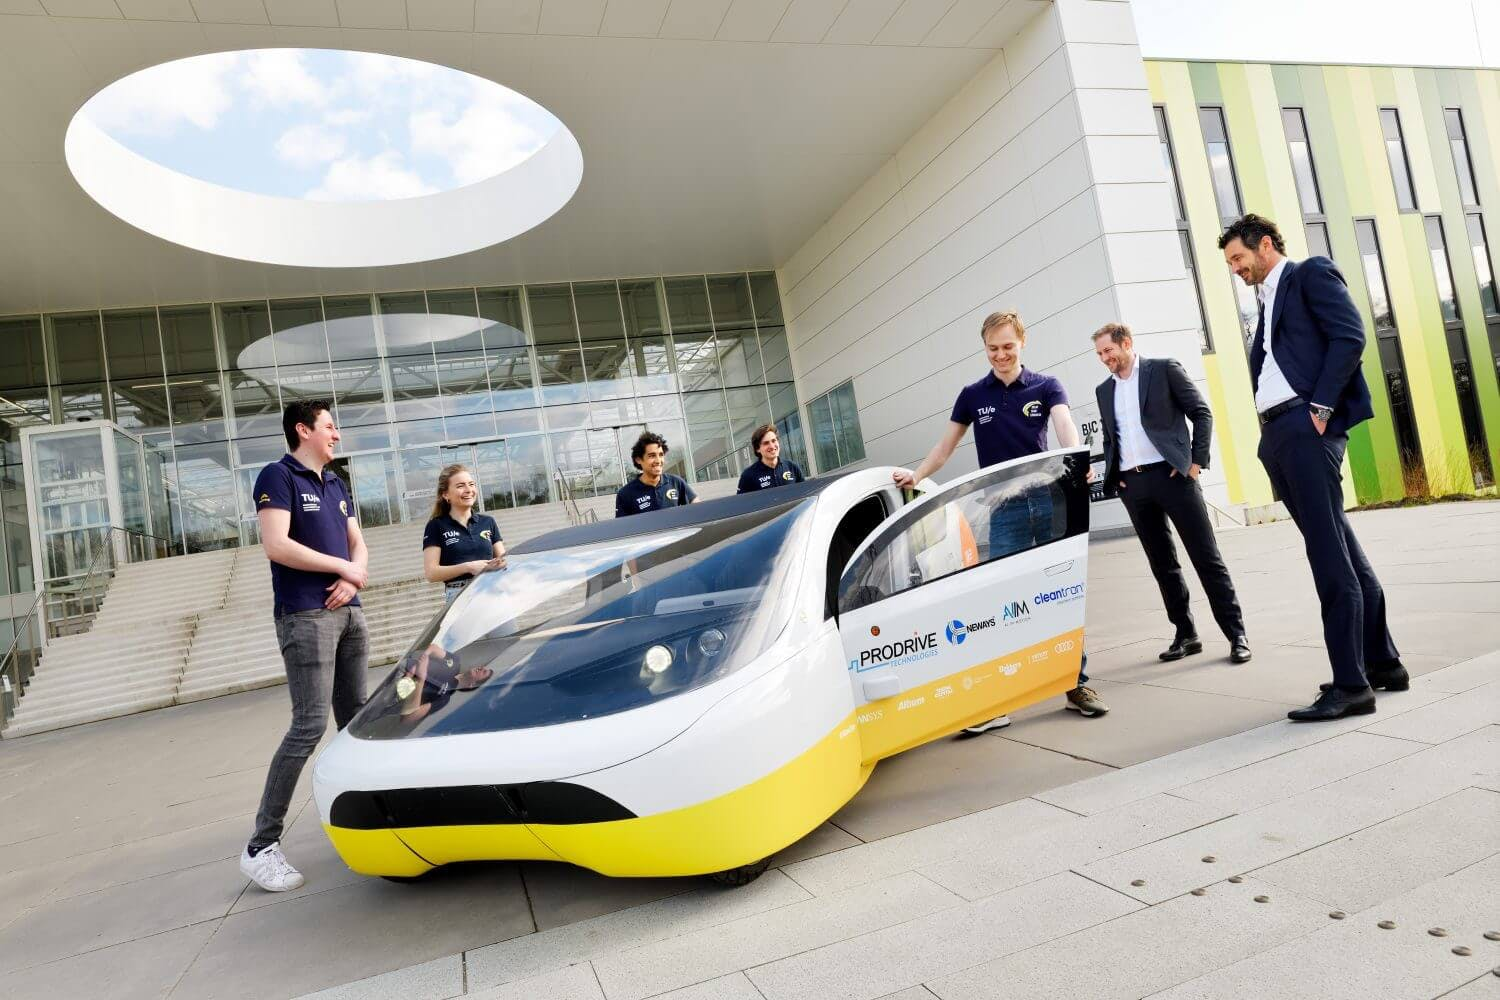 Solar Team Eindhoven continues partnership with Brainport Industries Campus